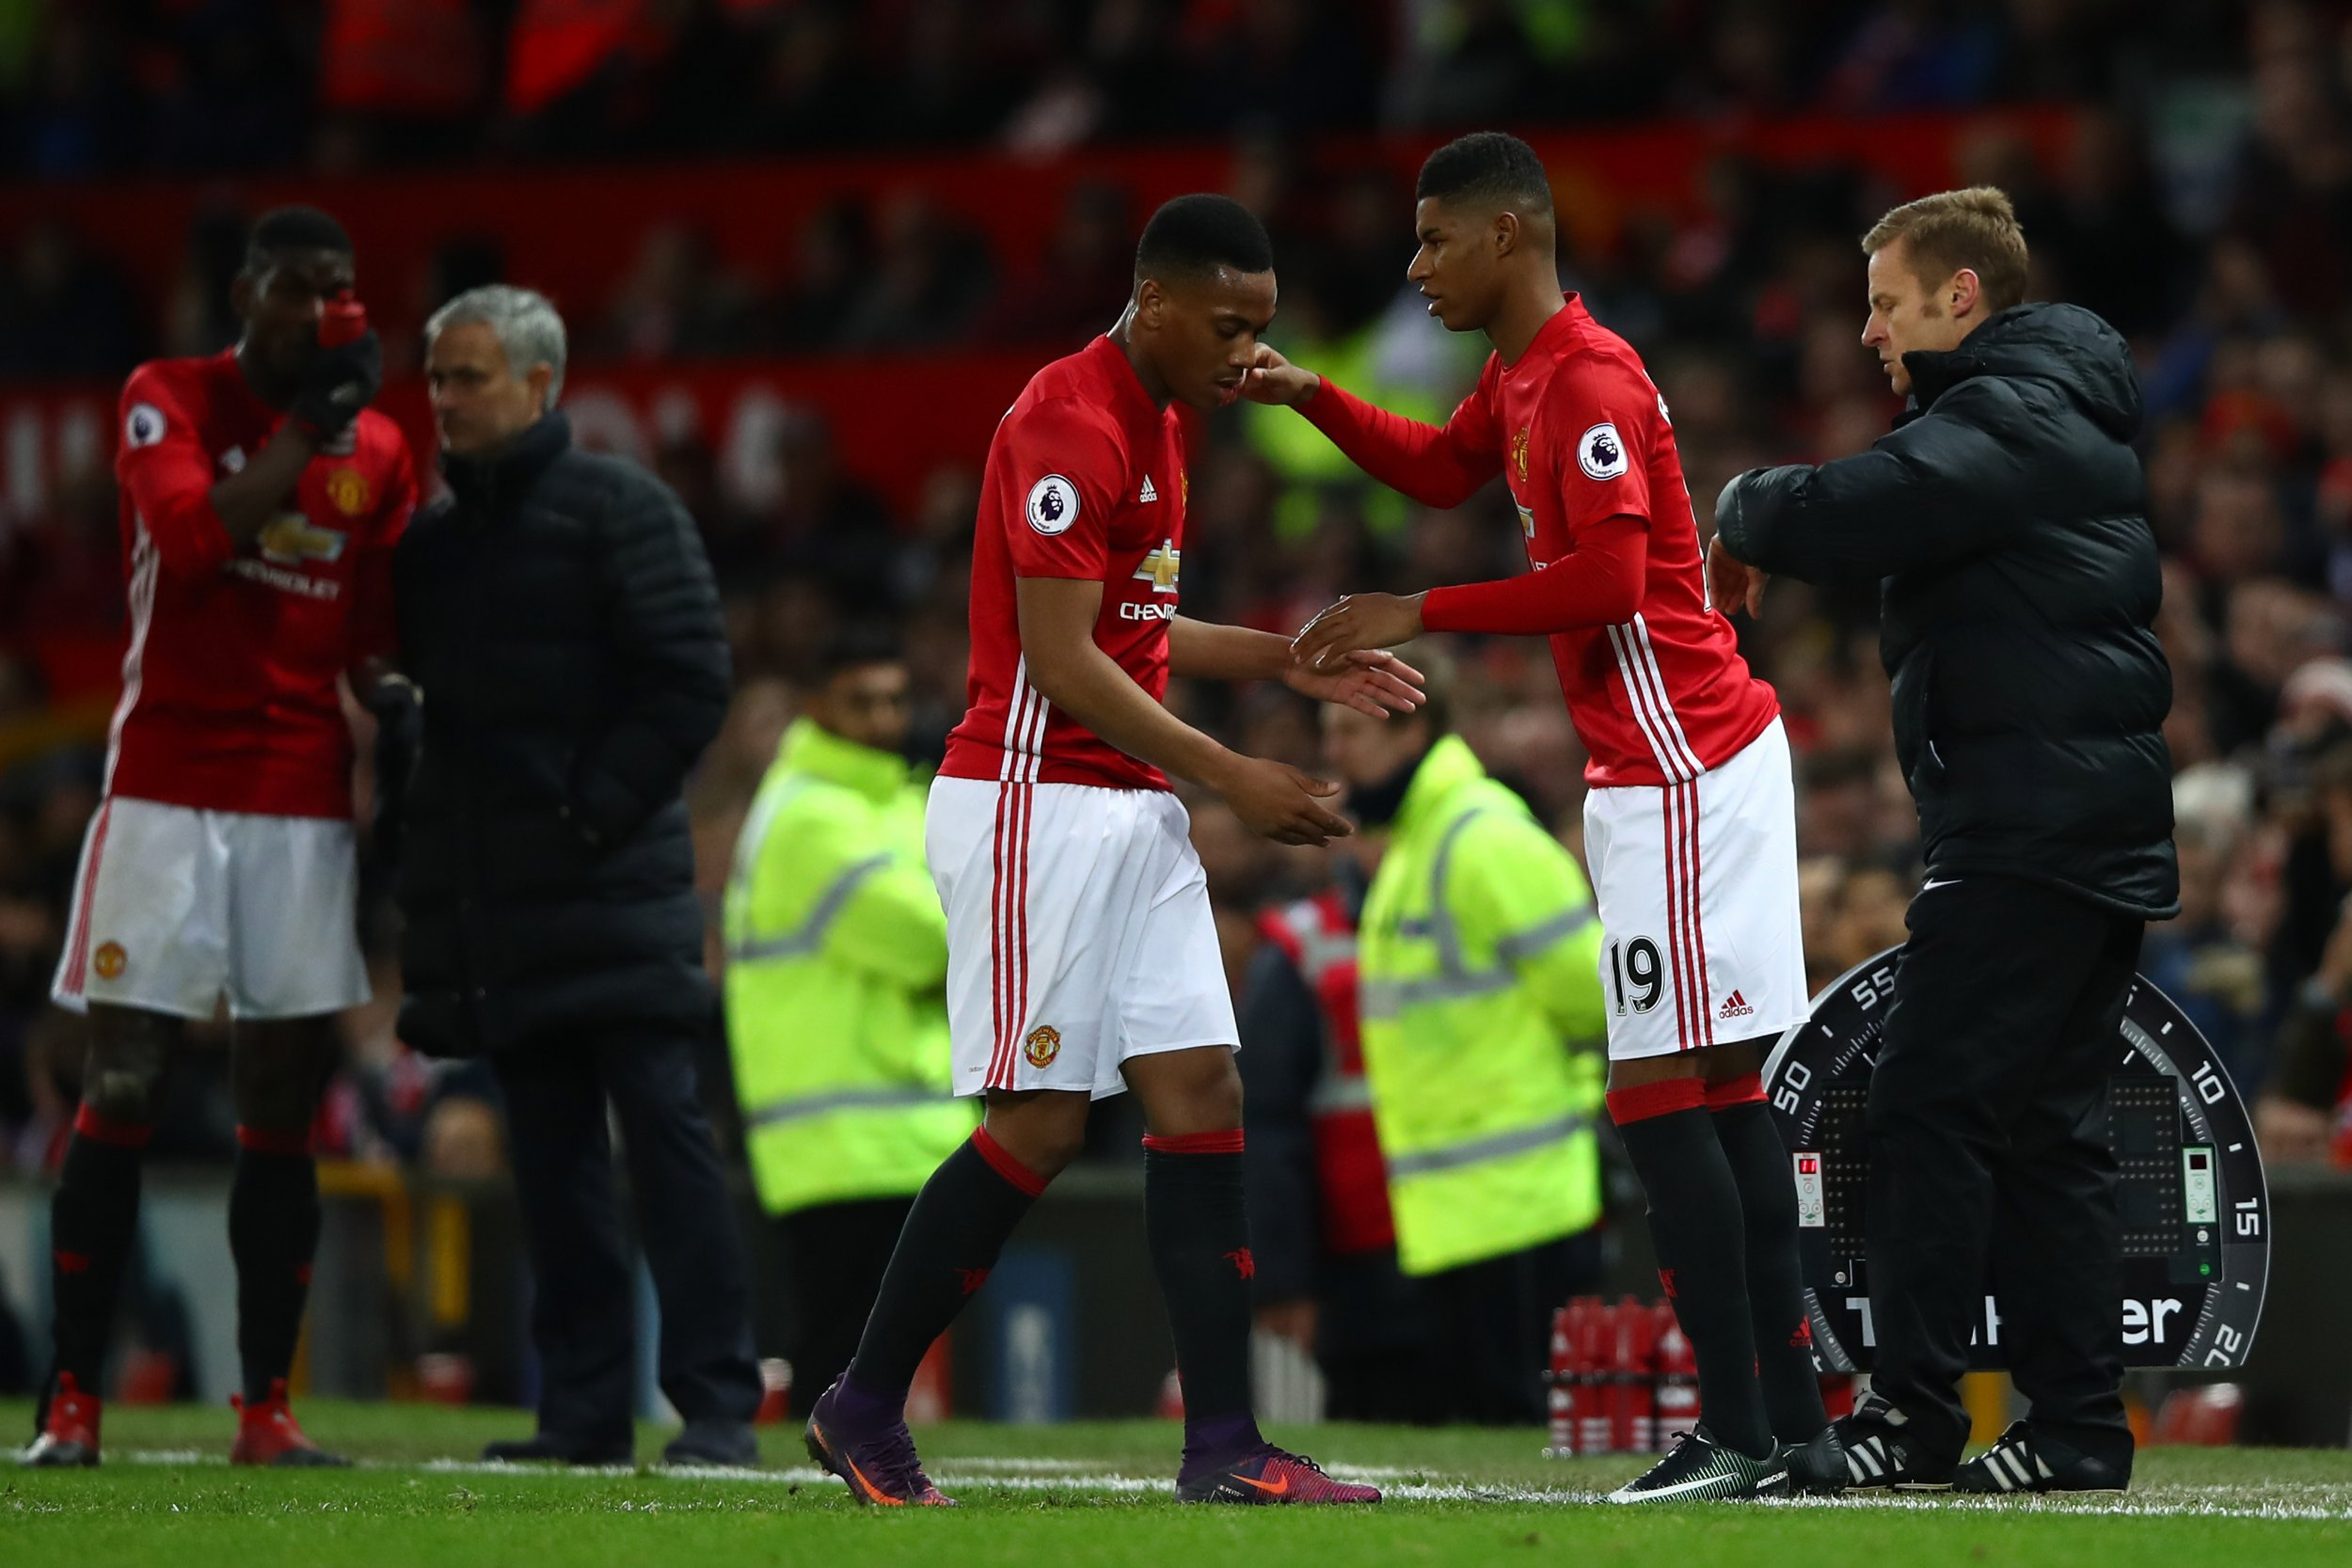 Manchester United strikers Anthony Martial, left, and Marcus Rashford.